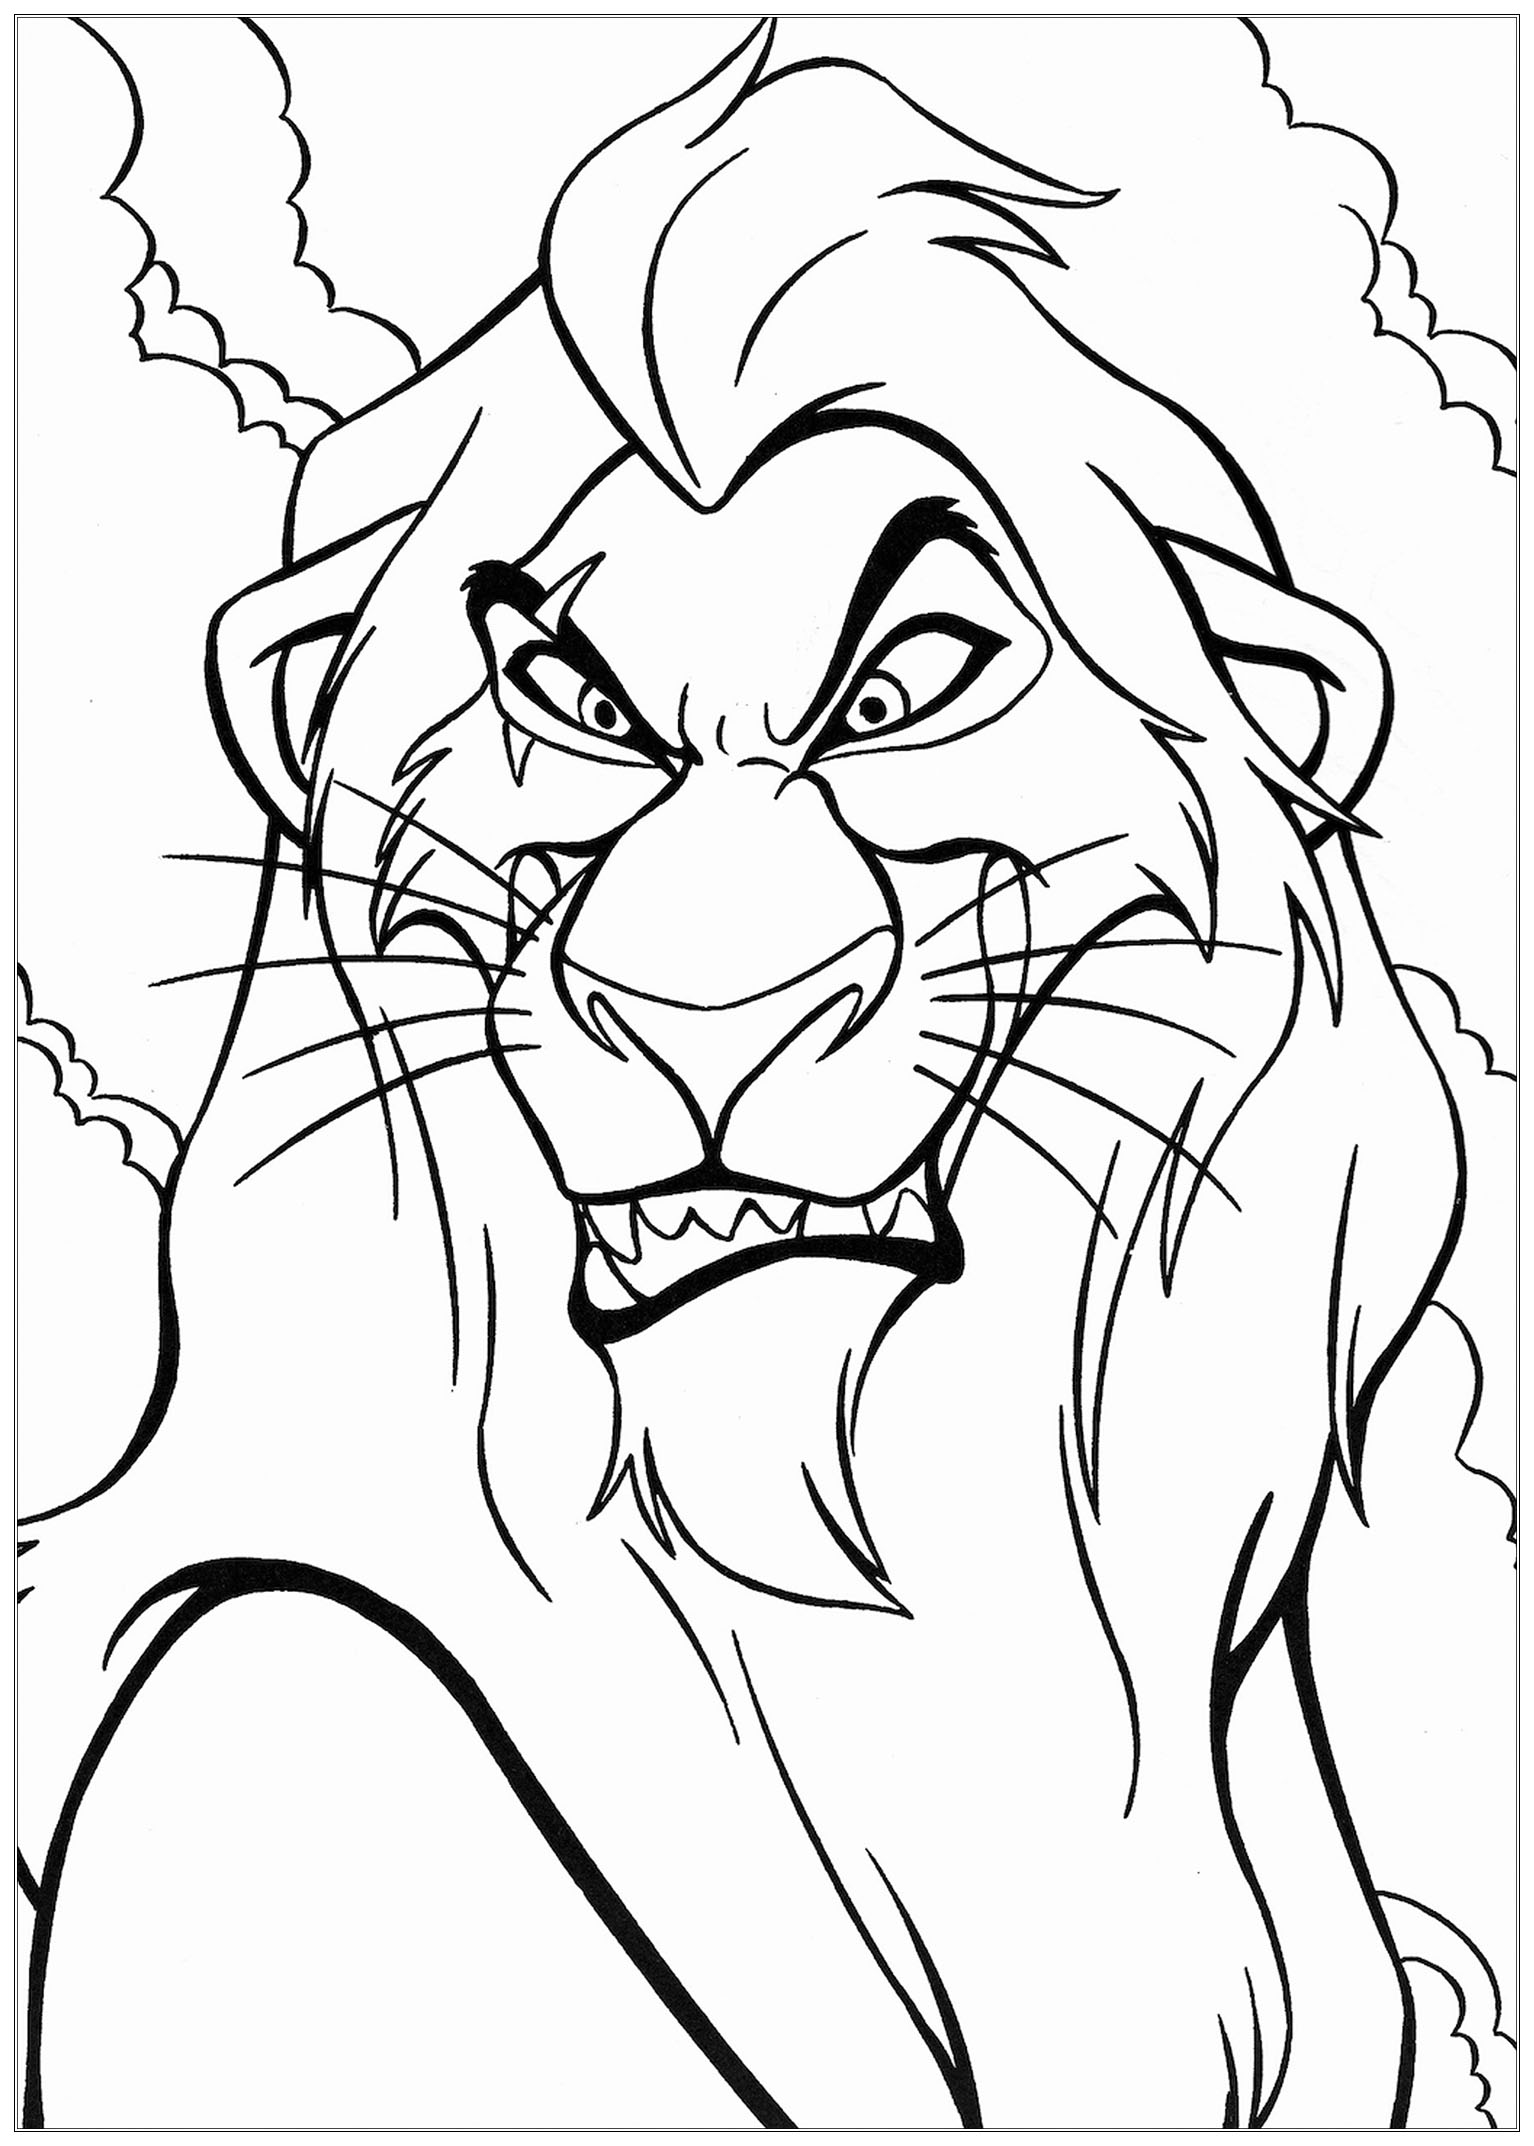 The lion king free to color for children - The Lion King ...